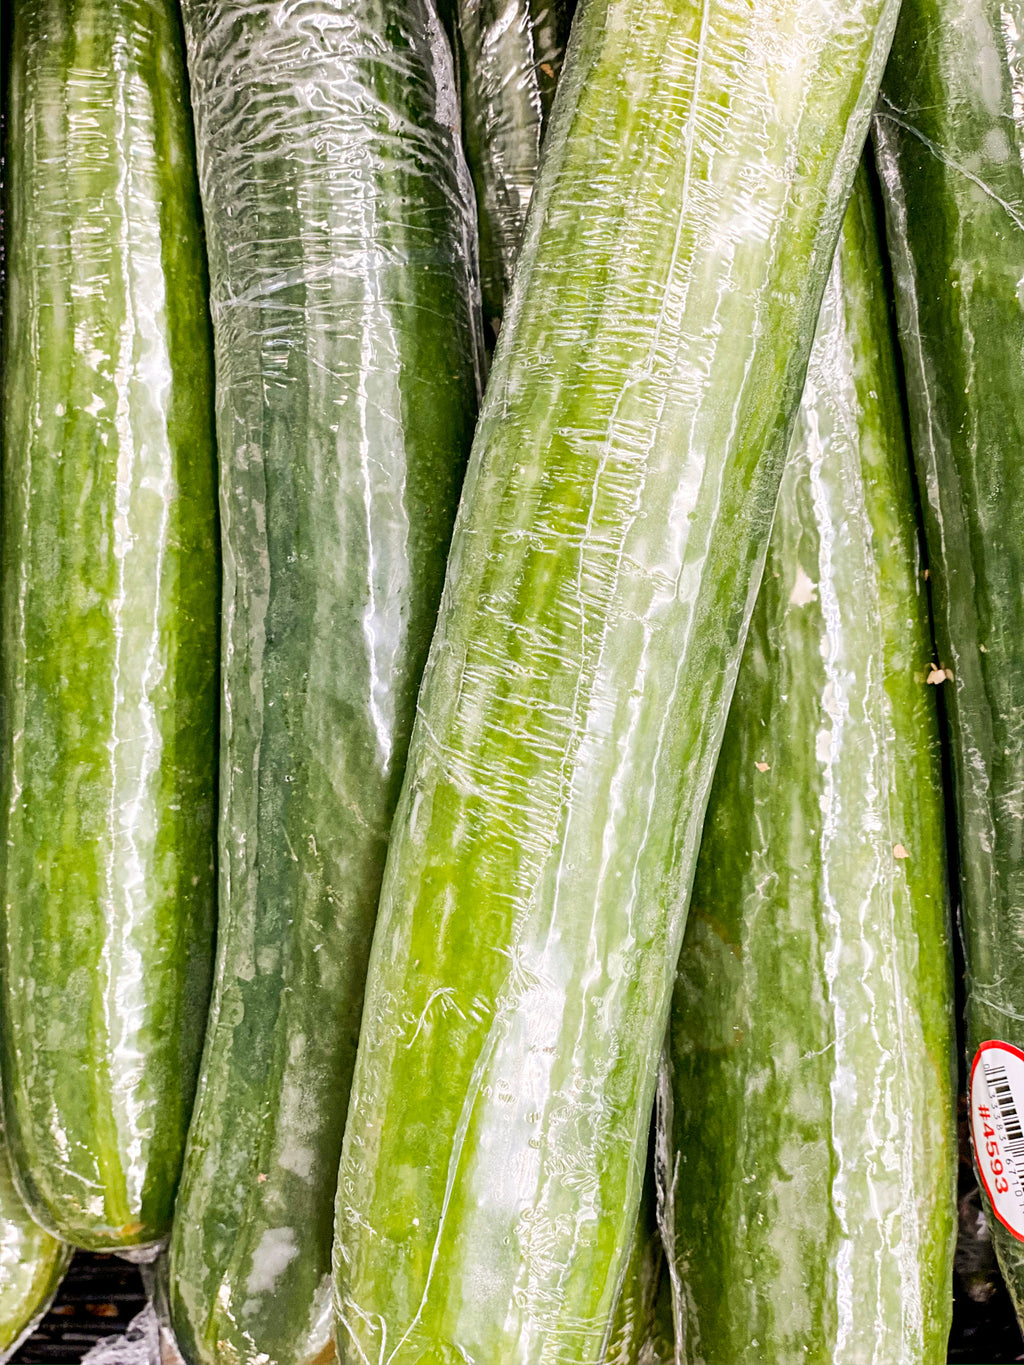 Seedless Cucumber - New Canaan